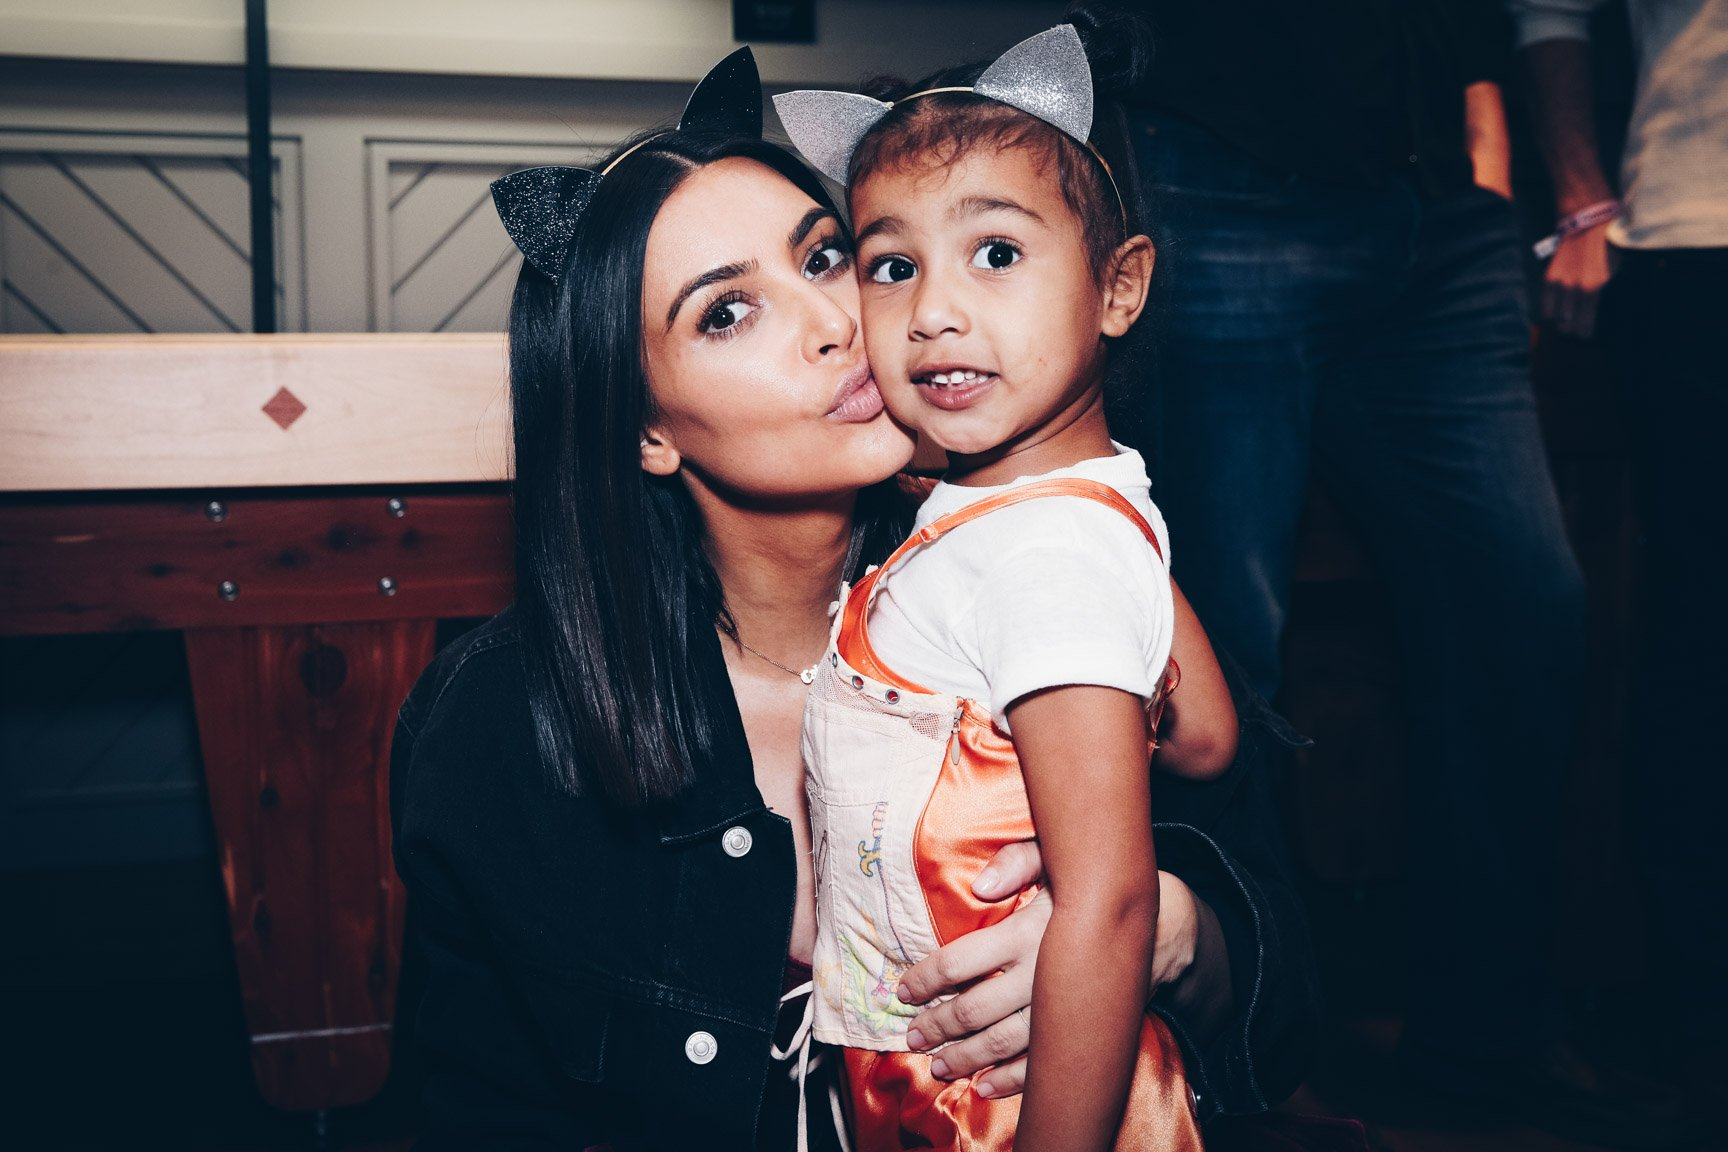 """Kim Kardashian And North West at Ariana Grande's """"Dangerous Woman"""" concert at The Forum on March 31, 2017 in Inglewood, California. 